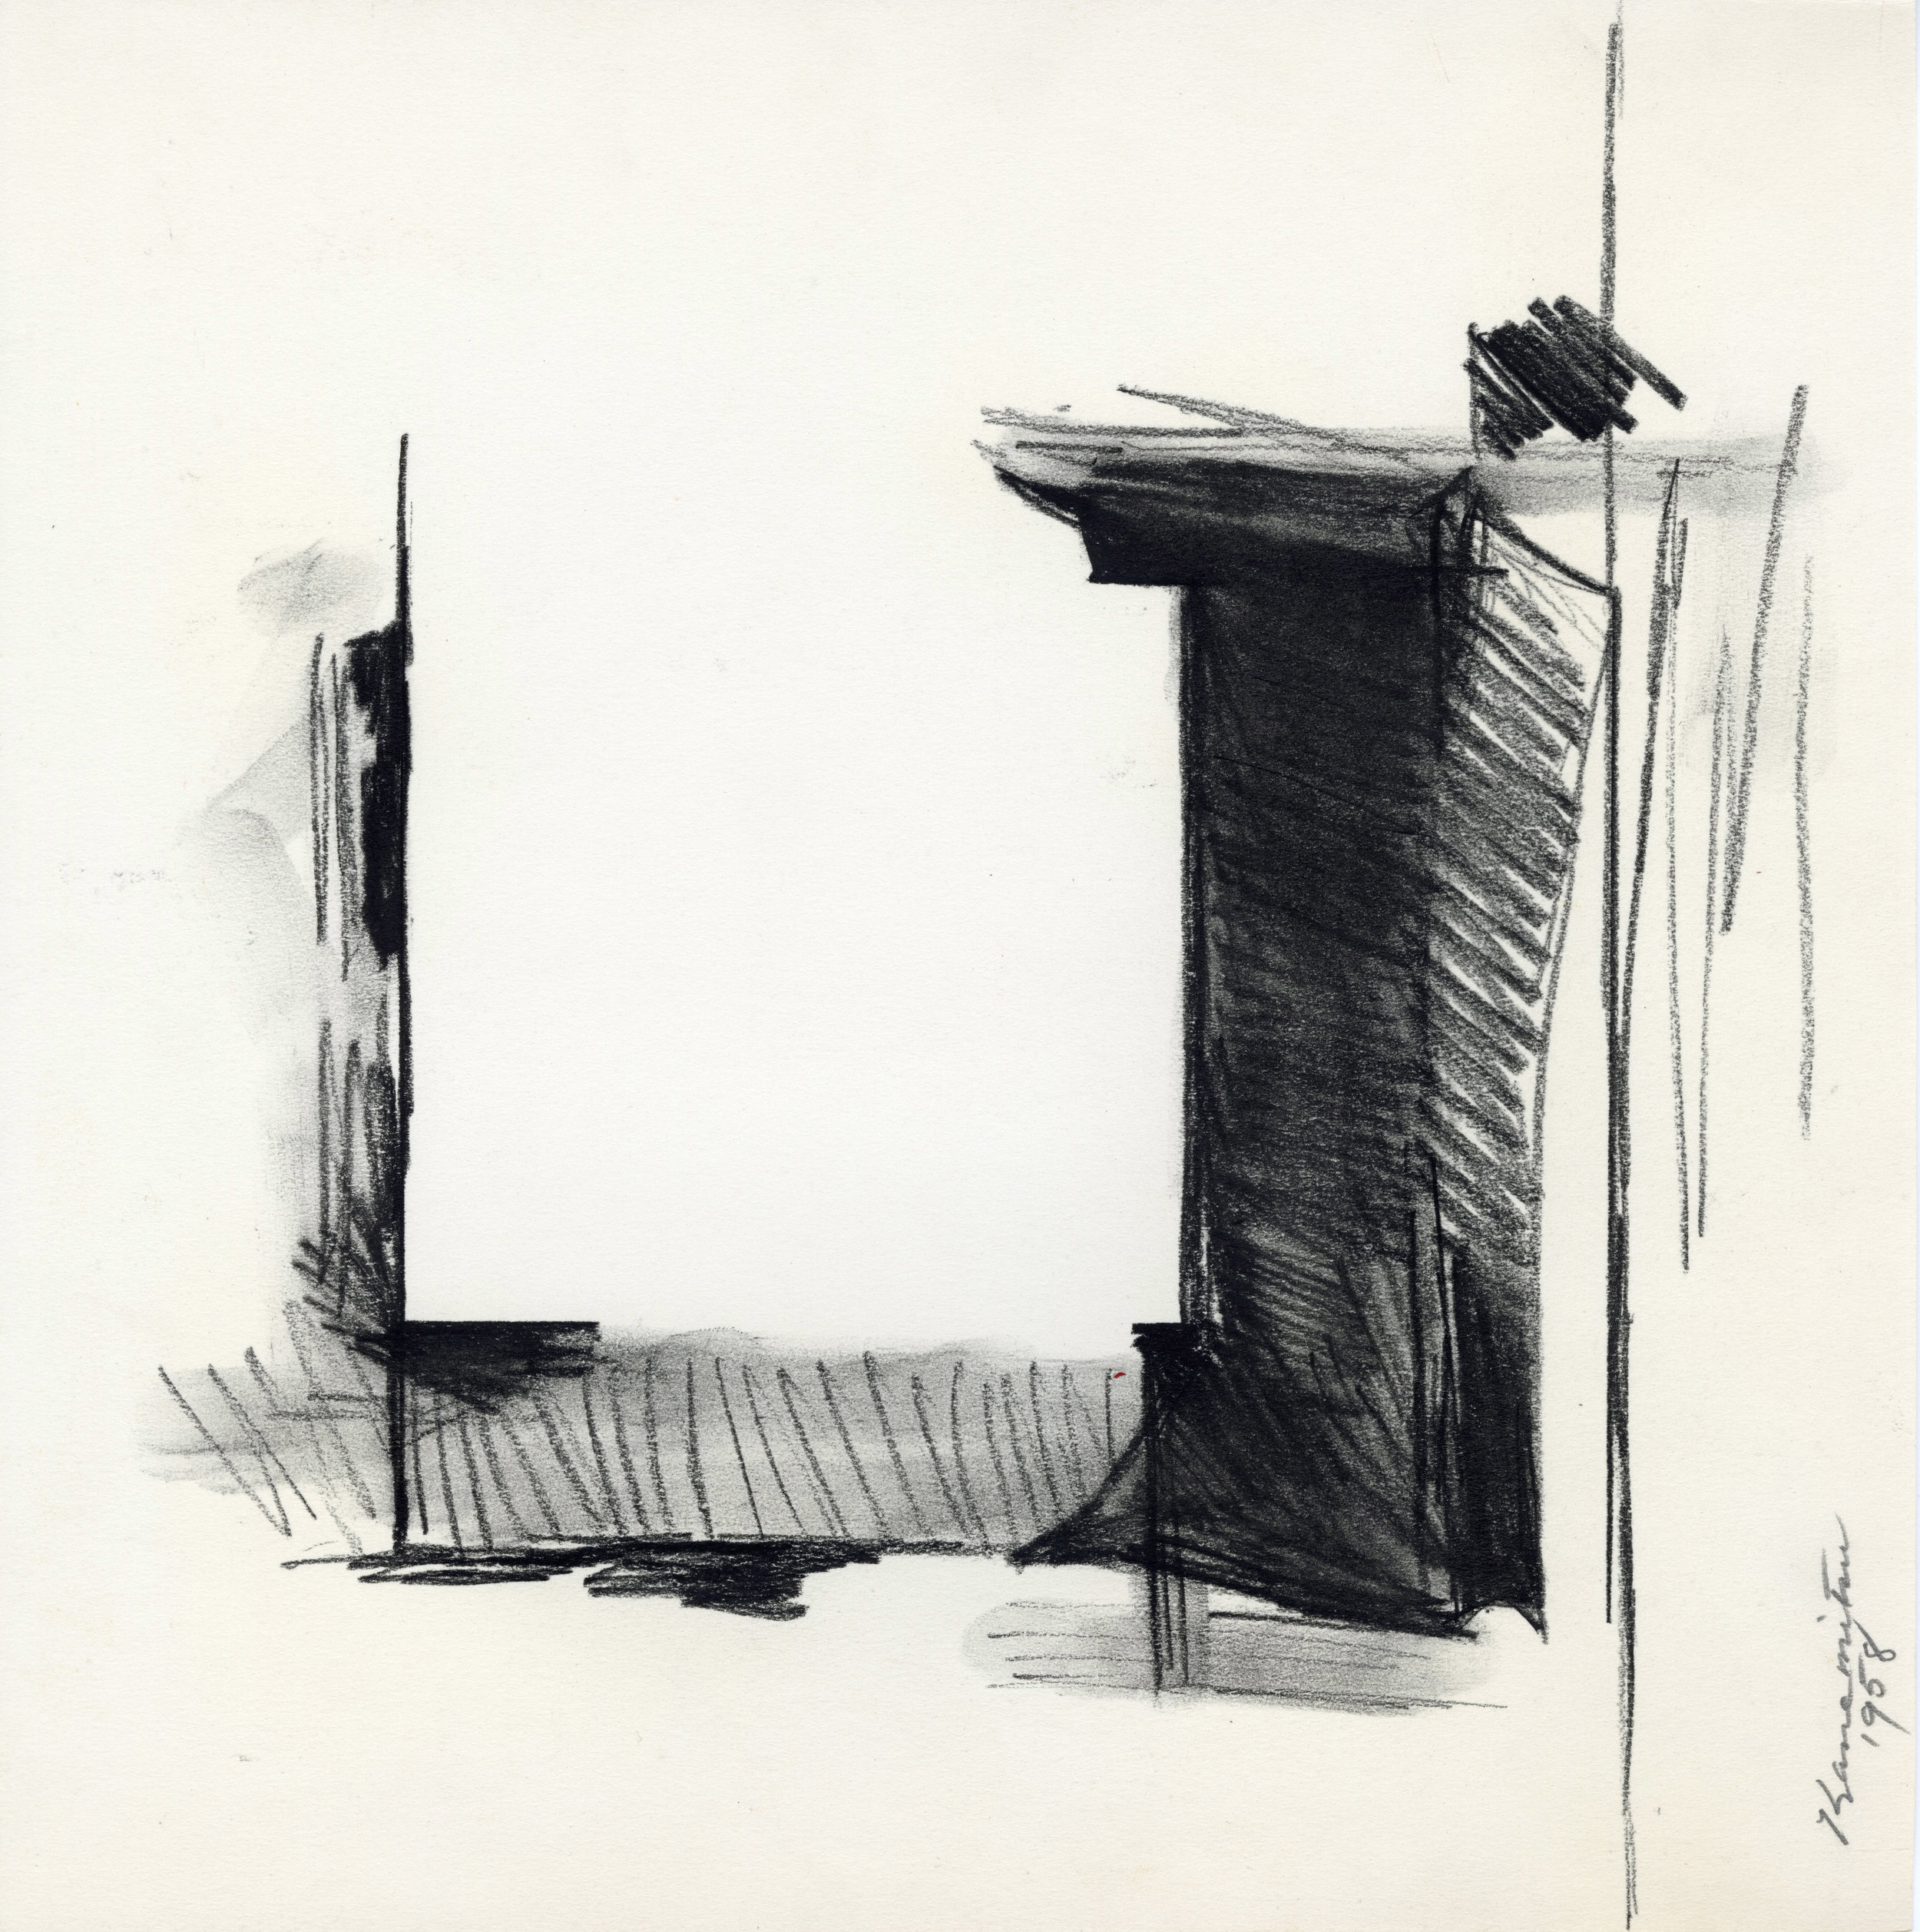 Untitled 5801 , 1958 charcoal on paper 10 7/8 x 11 inches; 27.6 x 27.9 centimeters